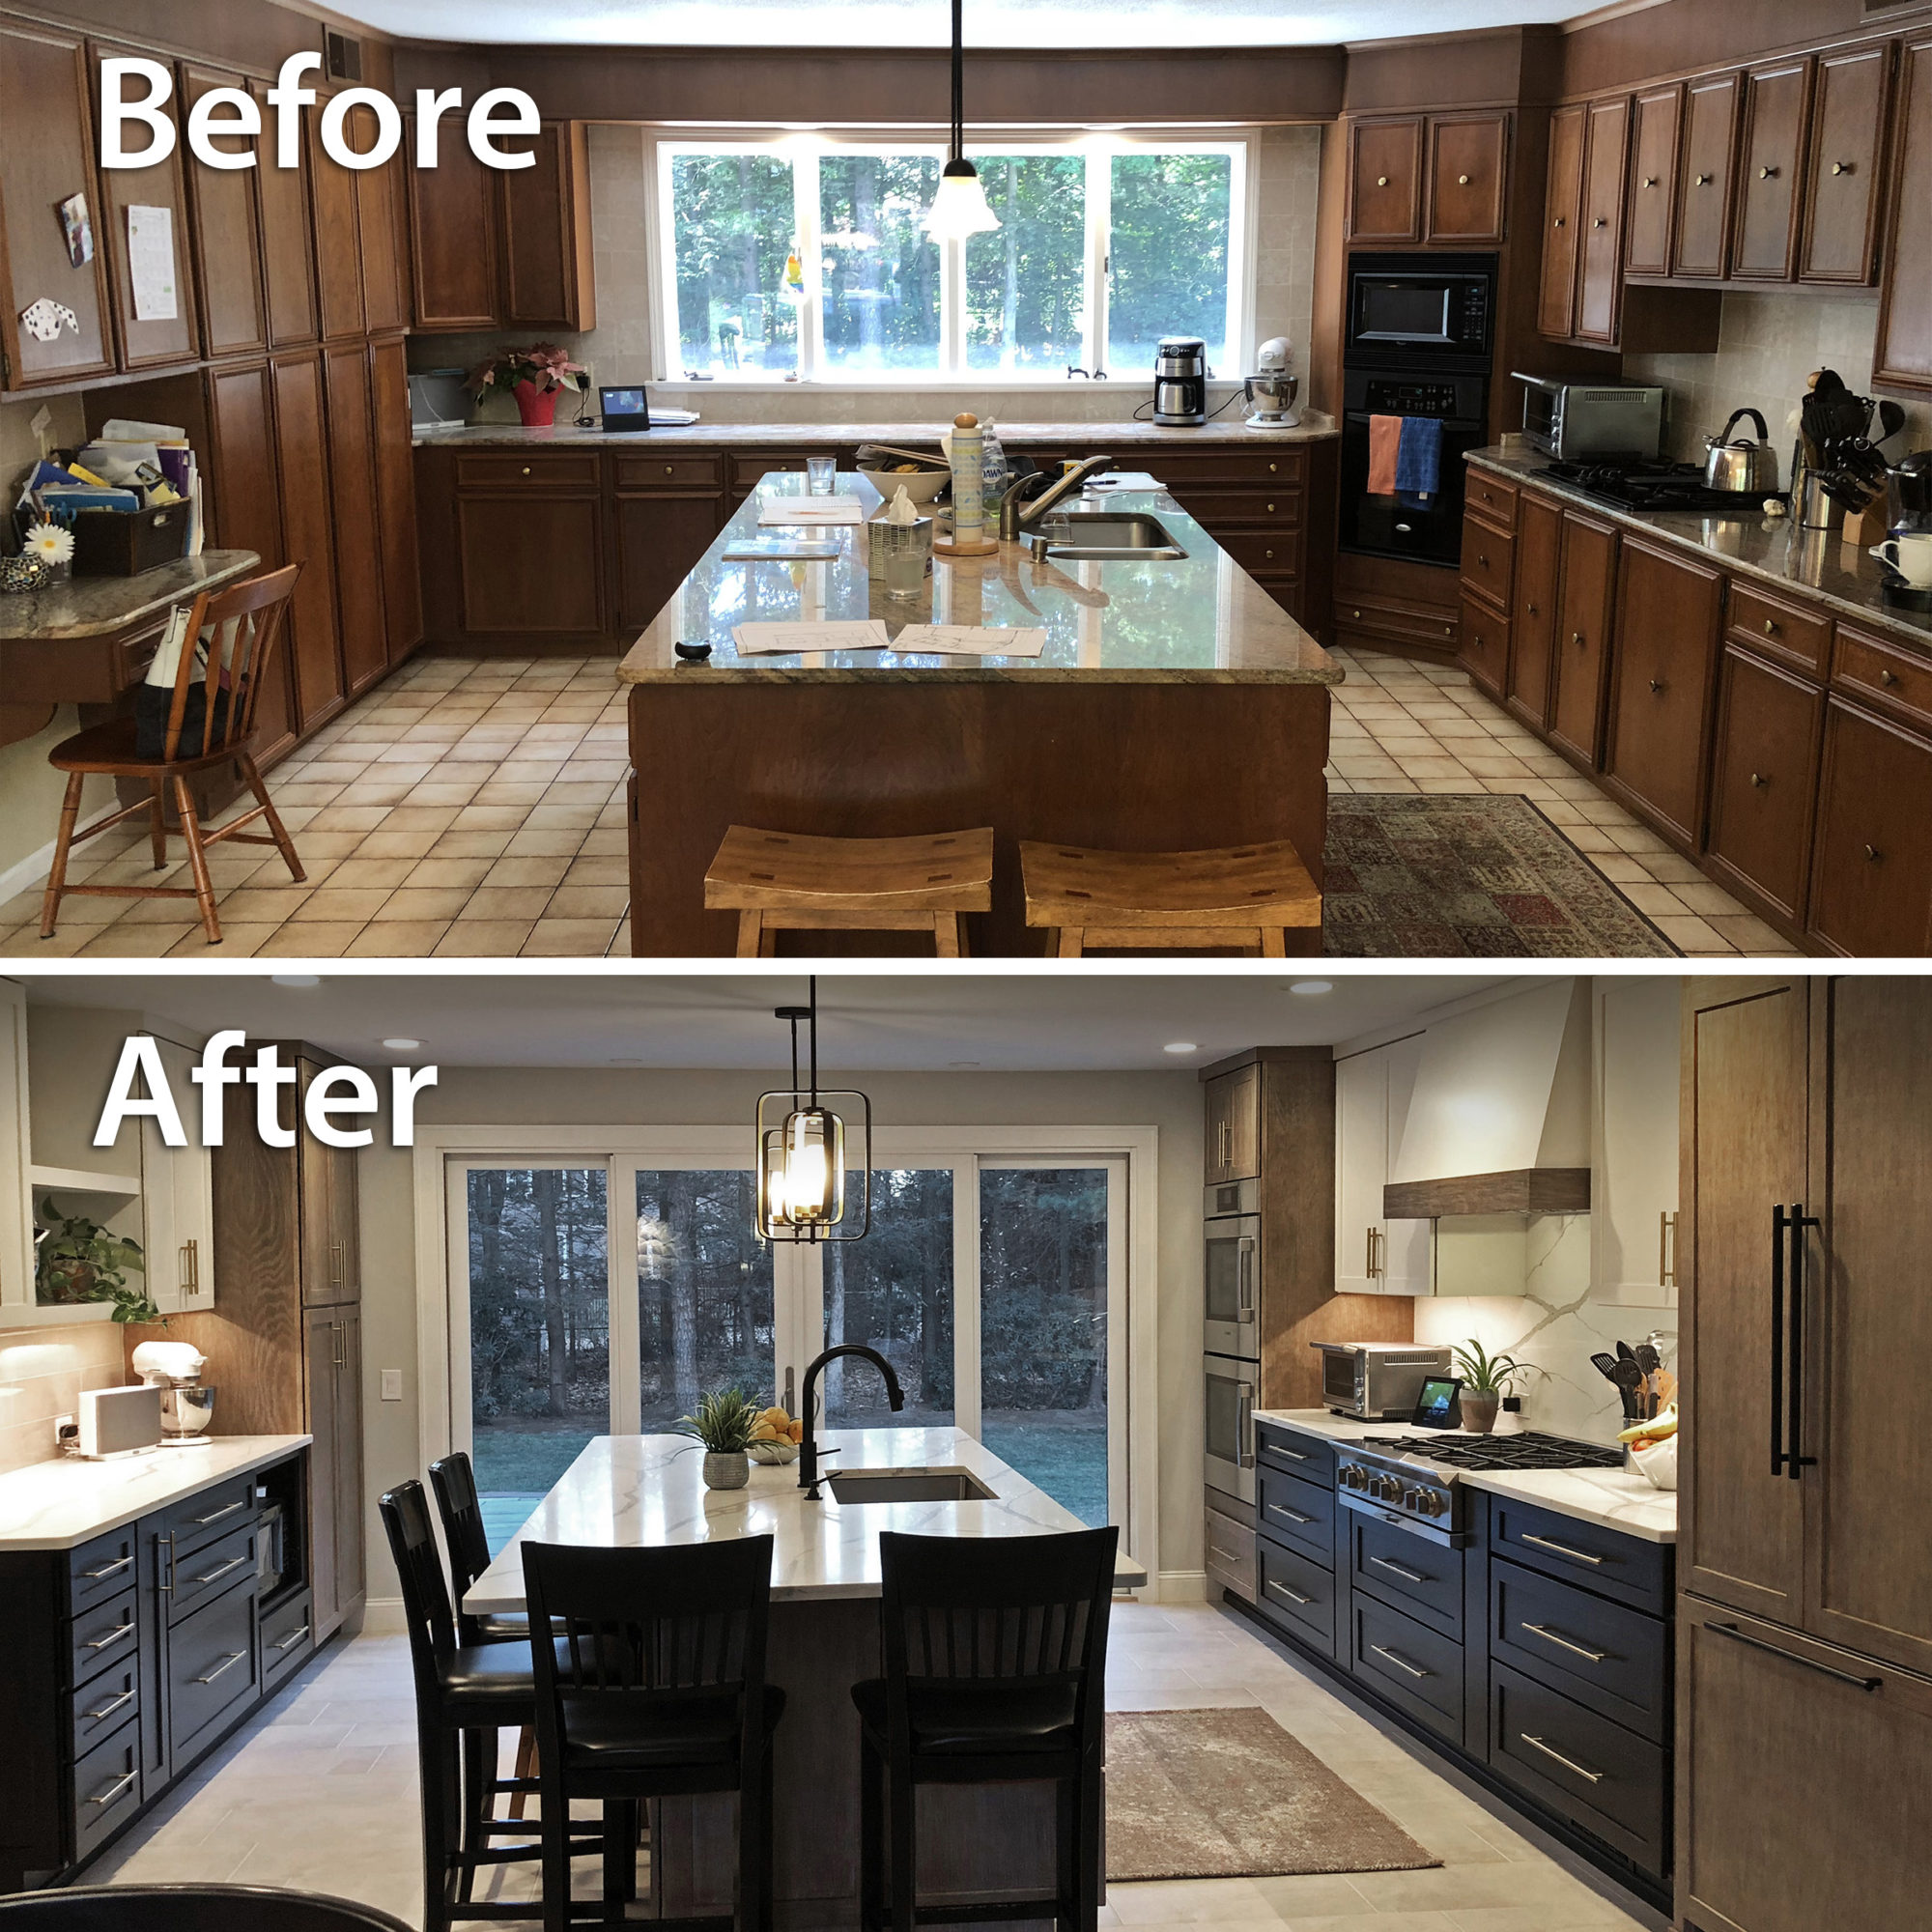 Kitchen Remodel in Longmeadow, MA by Legacy Construction